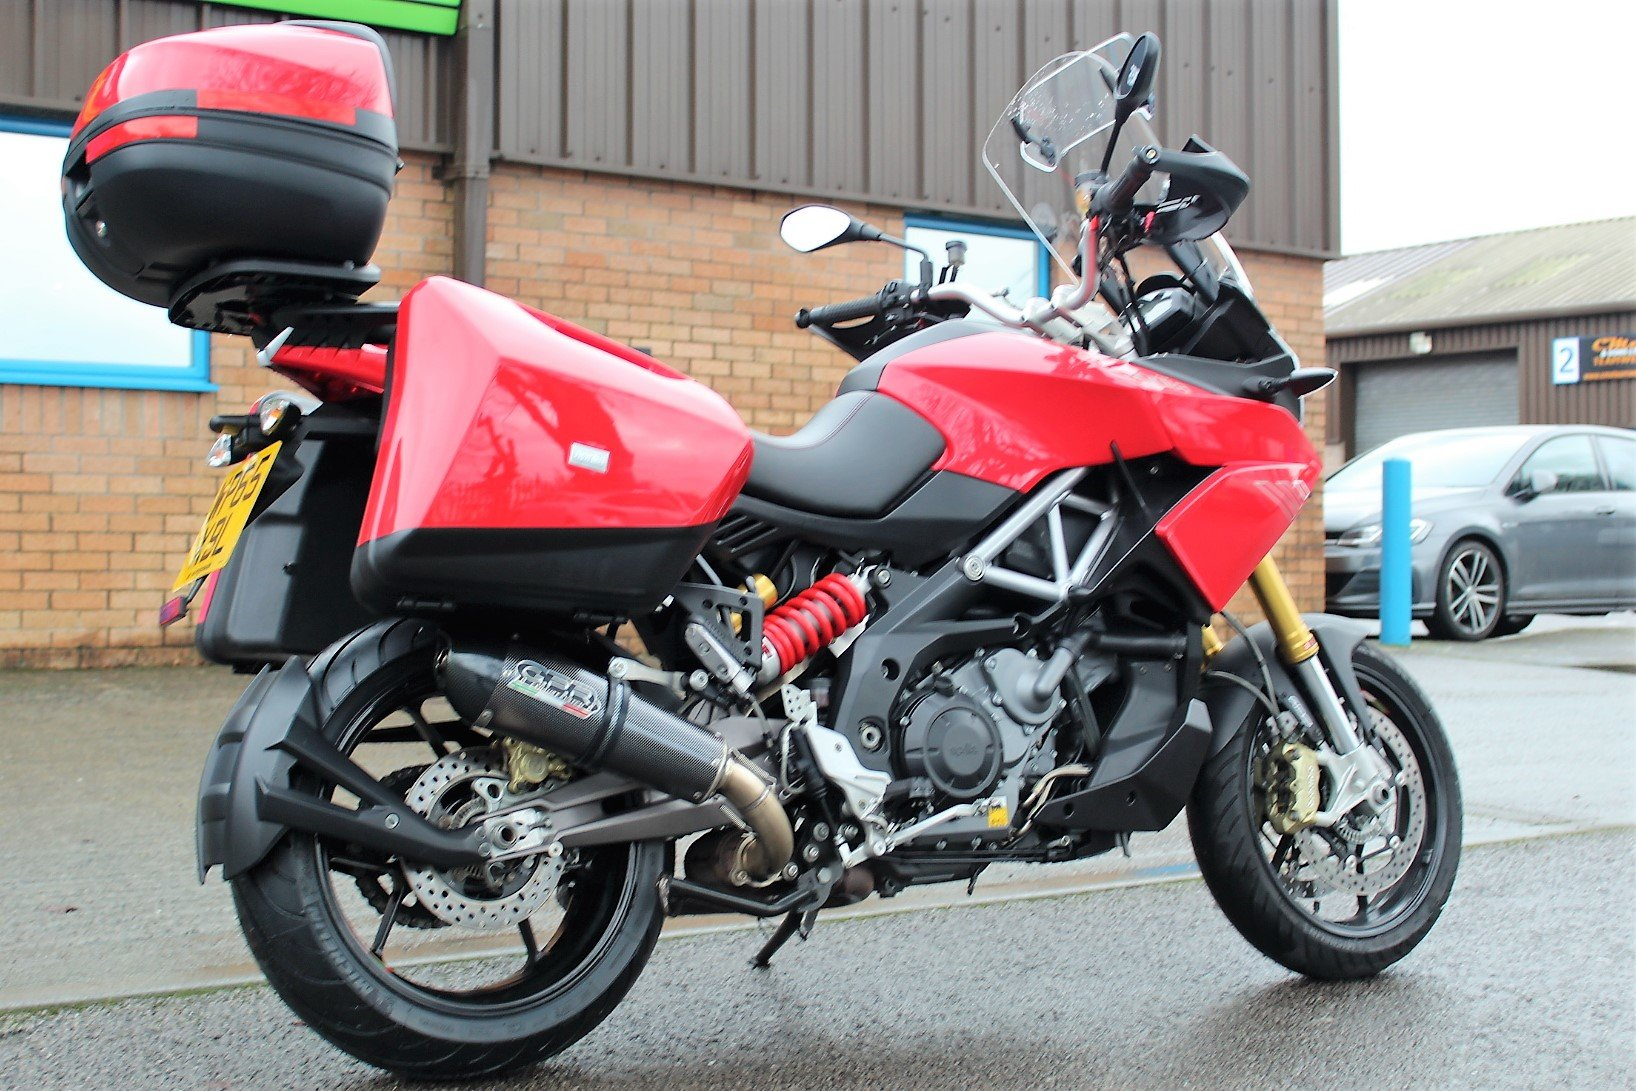 2015 65 Aprilia Caponord 1200 ABS Adventure Tourer For Sale (picture 6 of 12)